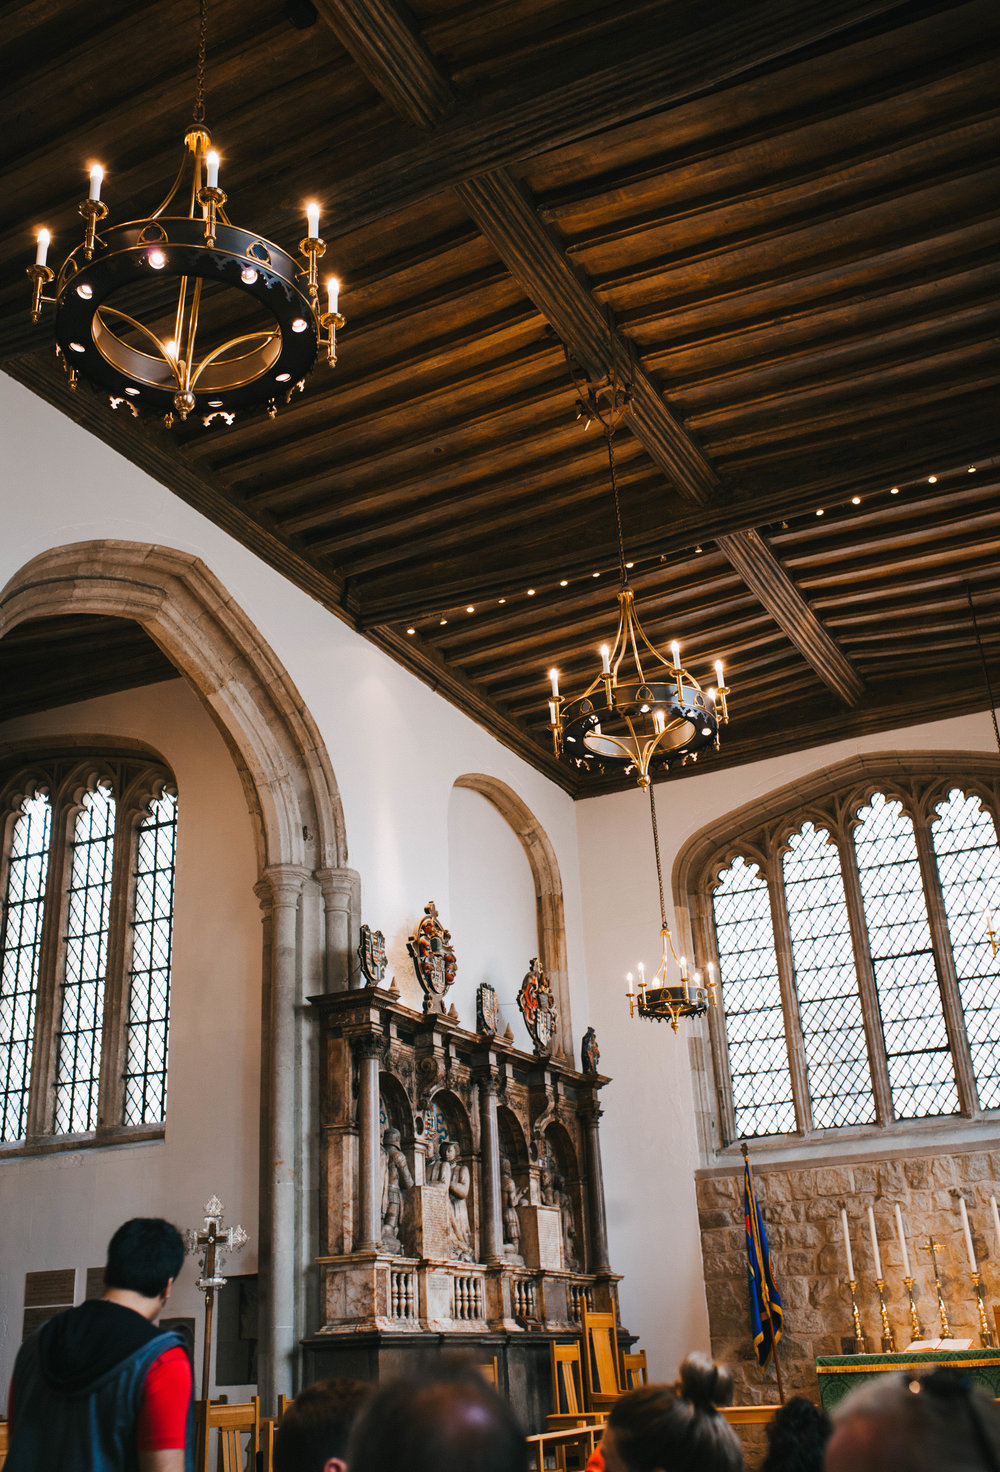 Inside the Church of St. Peter ad Vincula. Final resting place of Anne Boleyn, Catherine Howard, and hundreds of others killed at the Tower of London